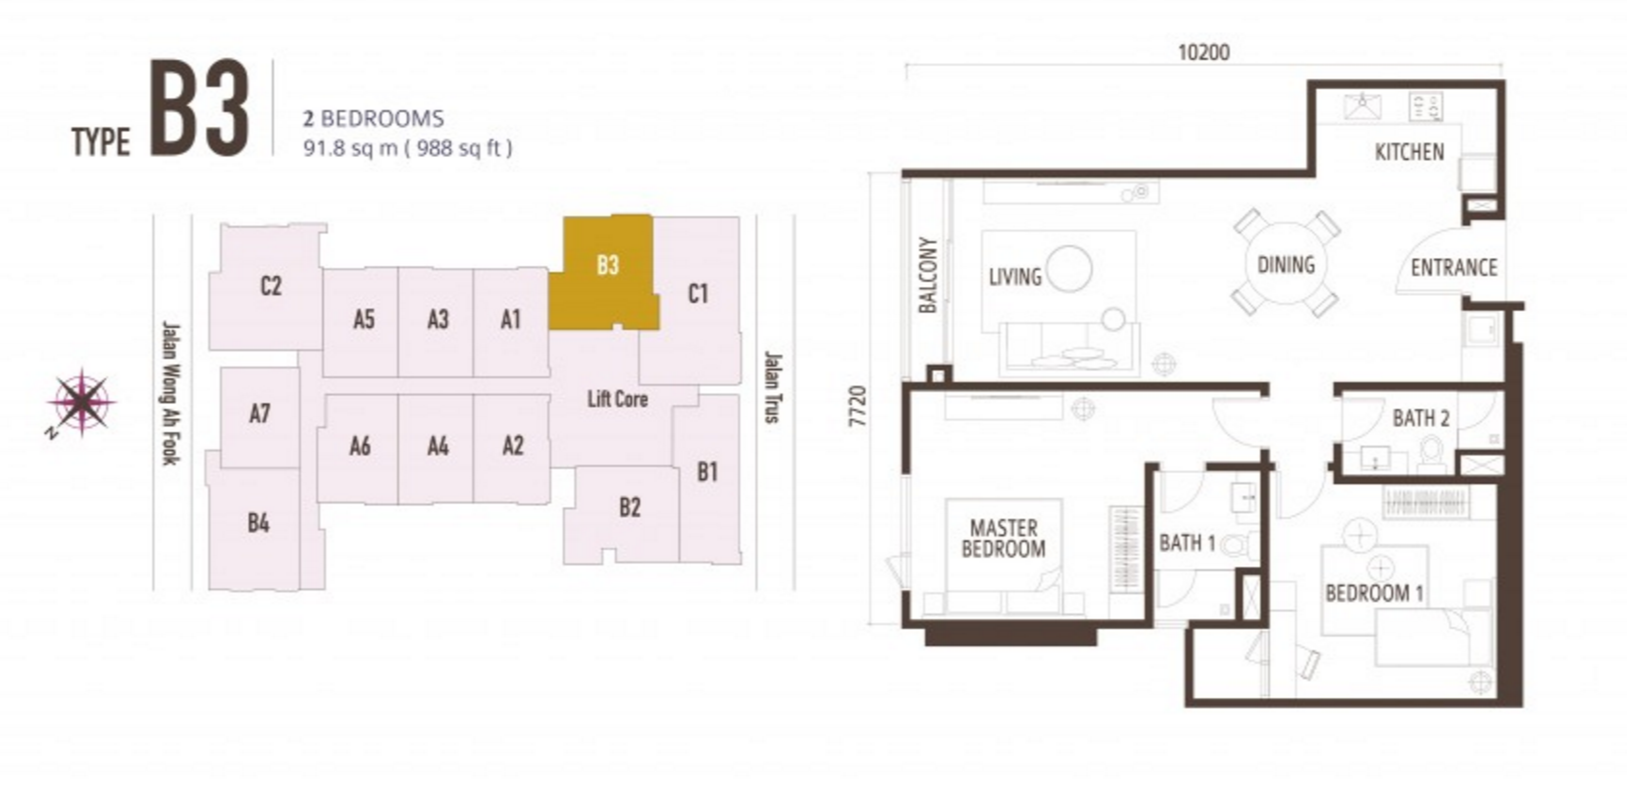 FloorPlan 2 Bedroom Type B3